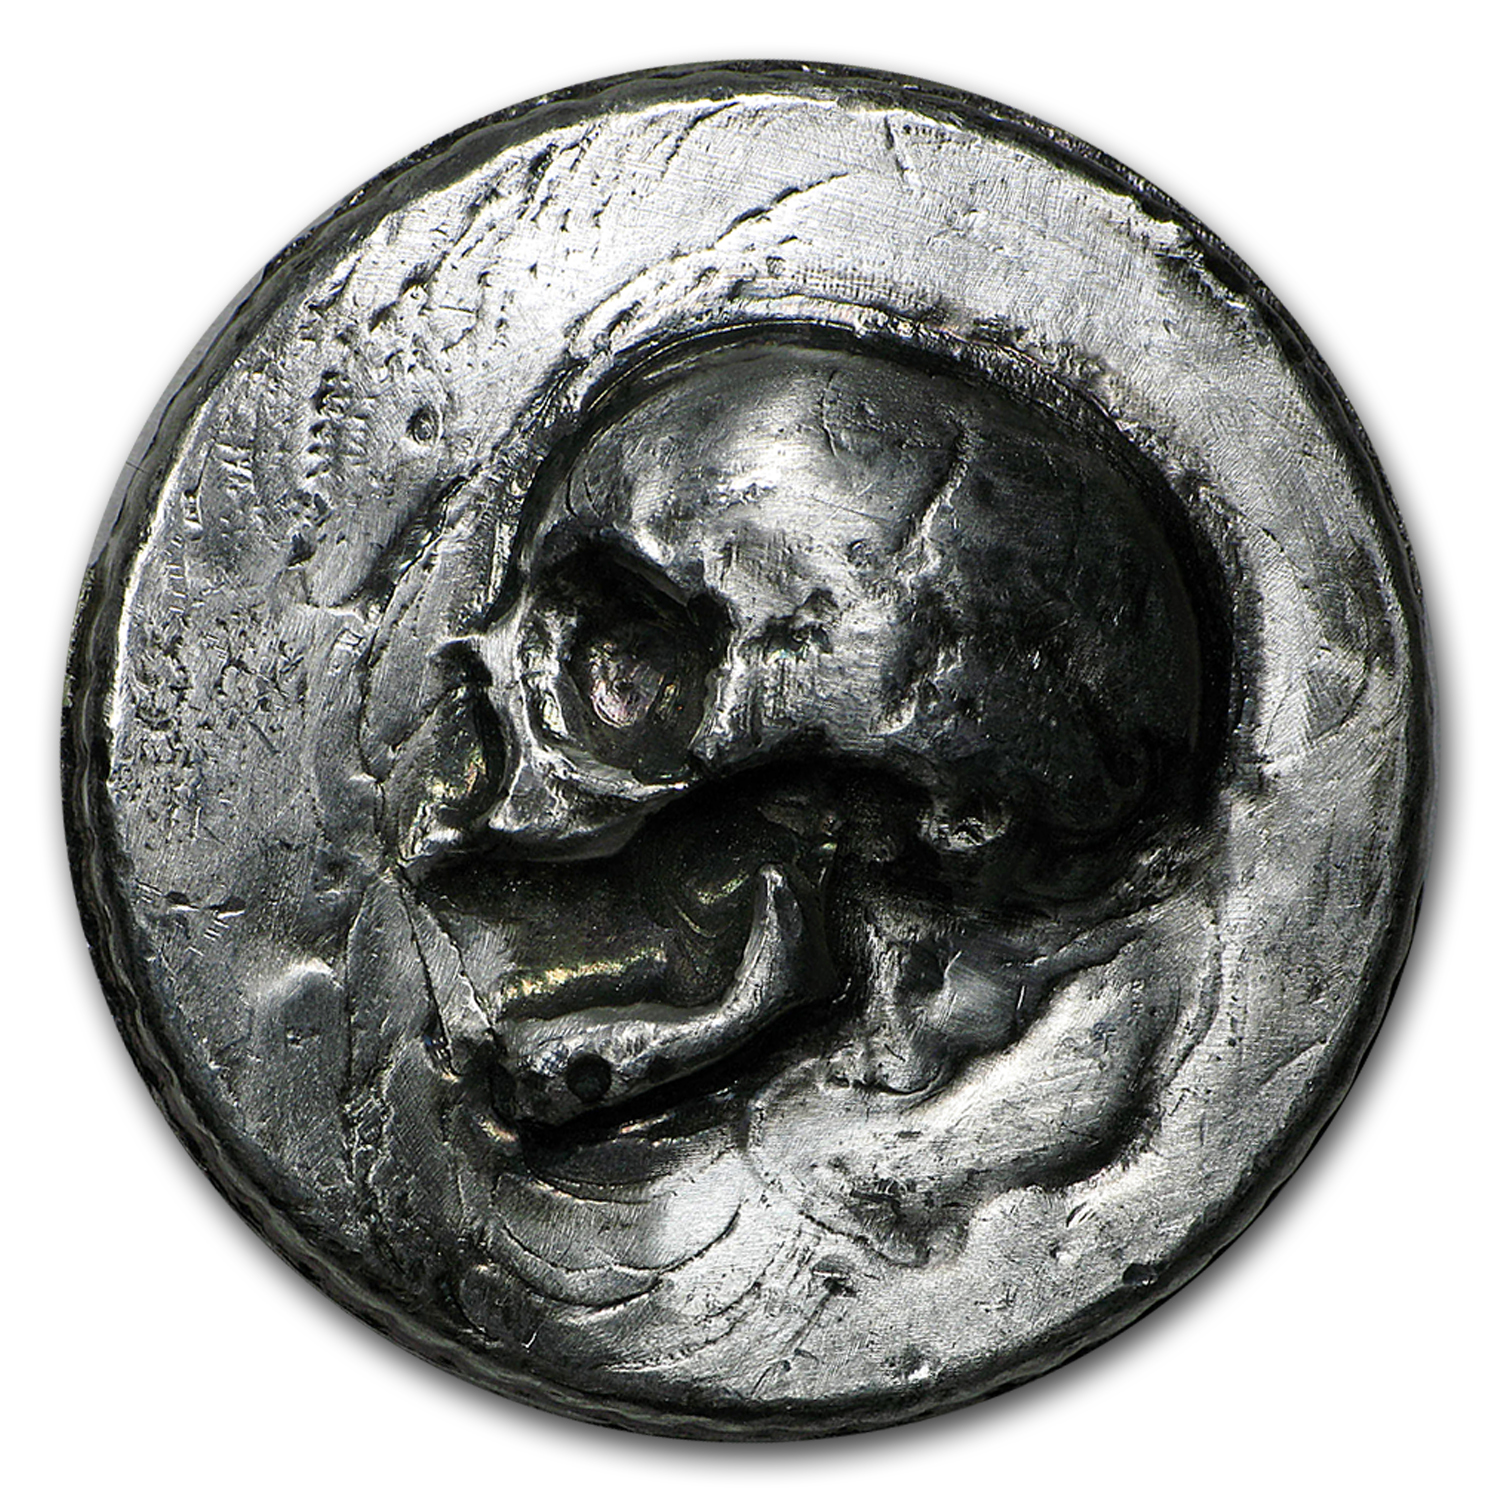 3 oz Silver Round - MK Barz & Bullion (Skull, Ultra High Relief)